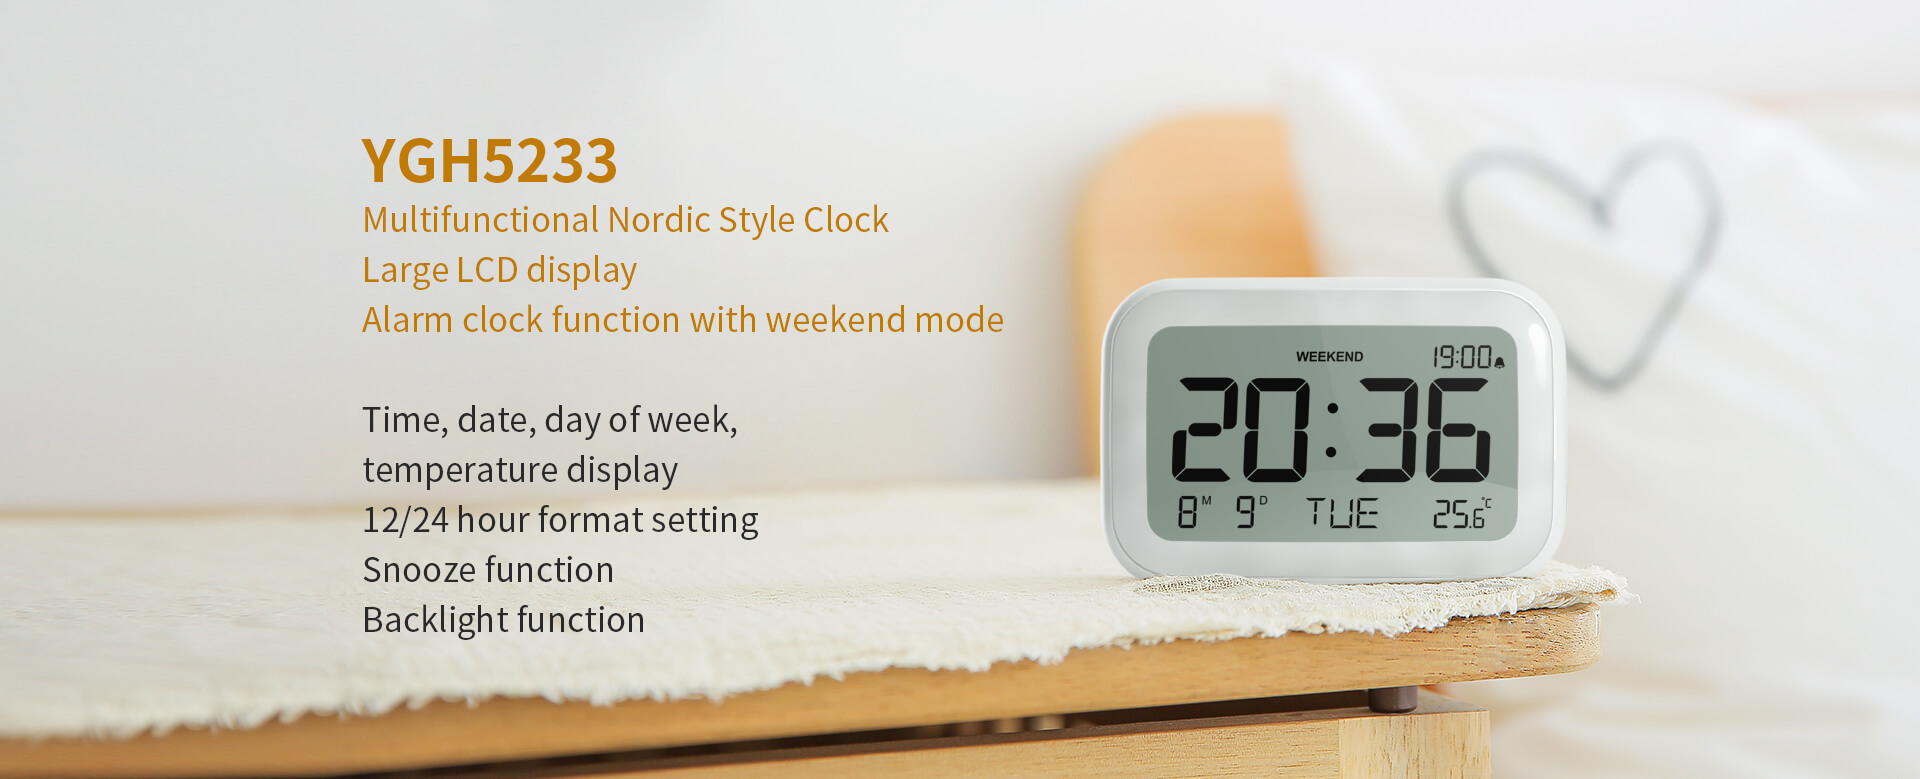 Multifunctional Nordic Style Clock